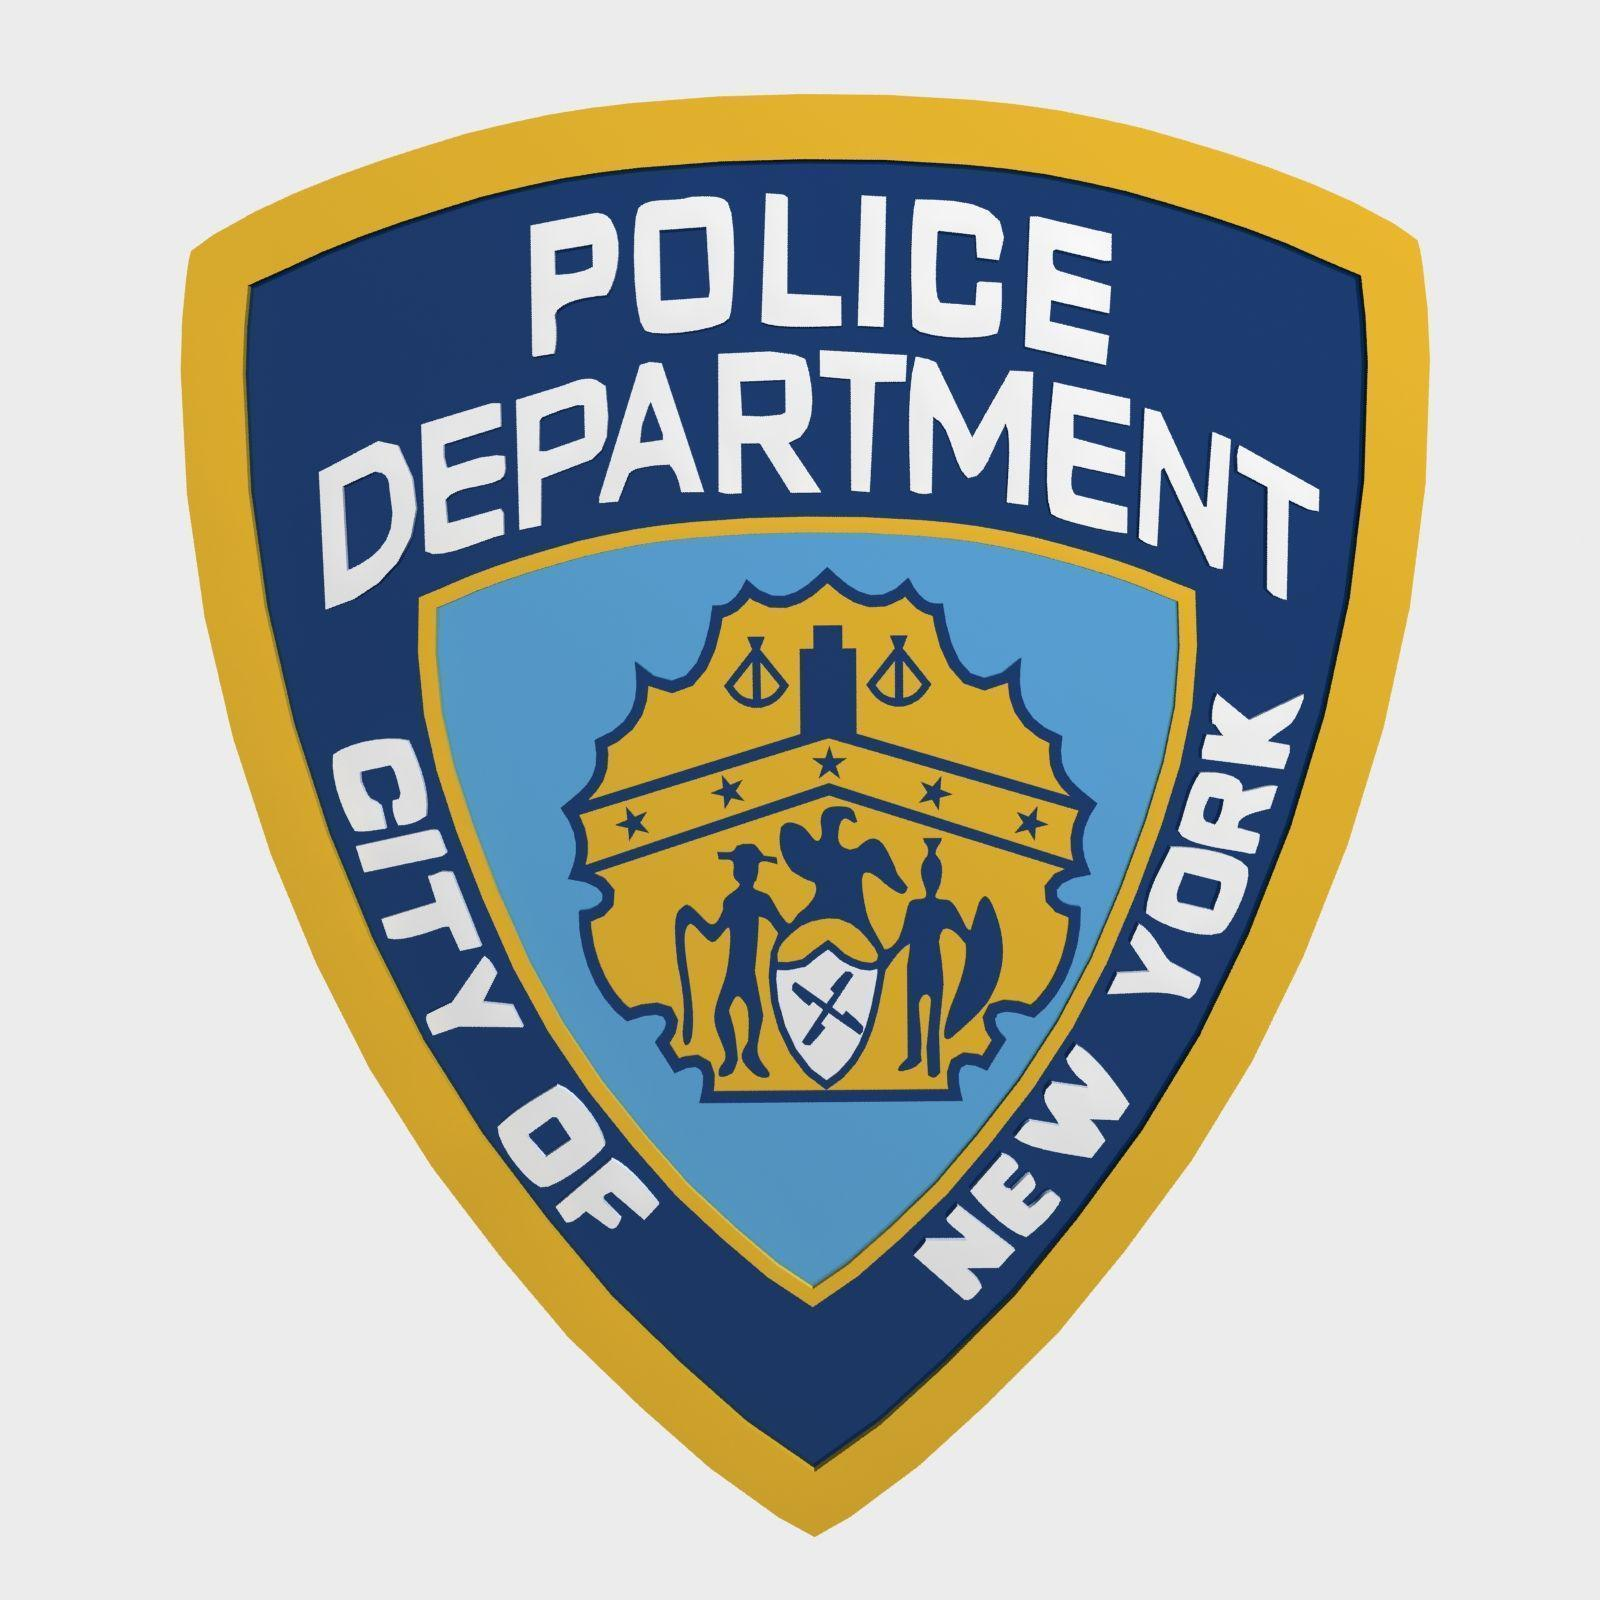 NYPD Wallpapers - Wallpaper Cave